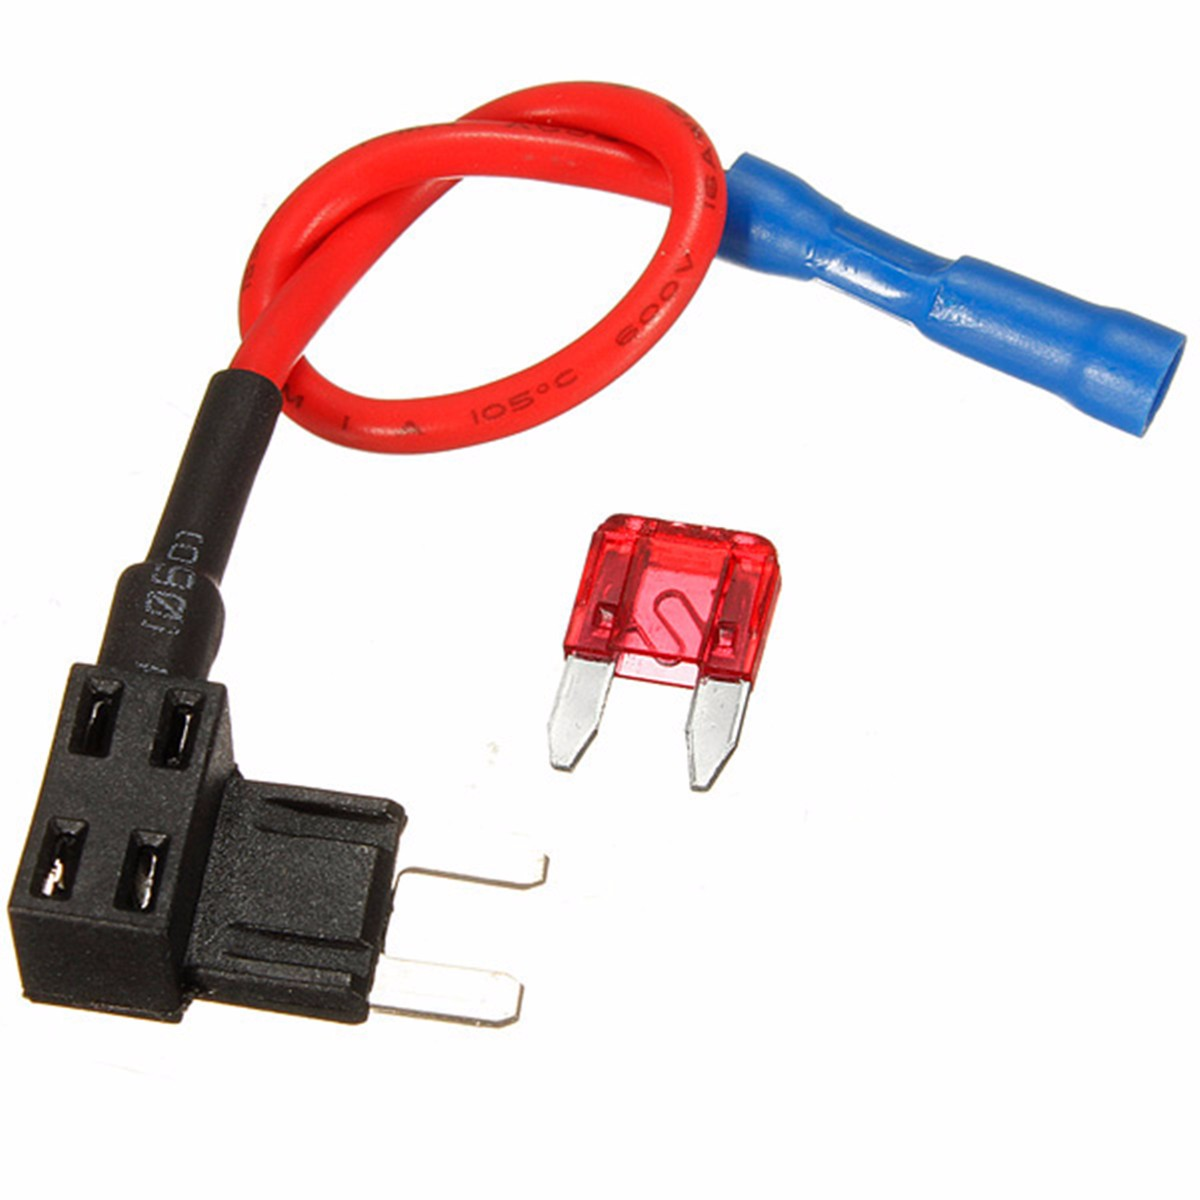 Add A Circuit Standard Mini Micro Blade Fuse Boxes Holder Piggy Panel With Addacircuit Back Fuses Tap Christmas Gifts 2018